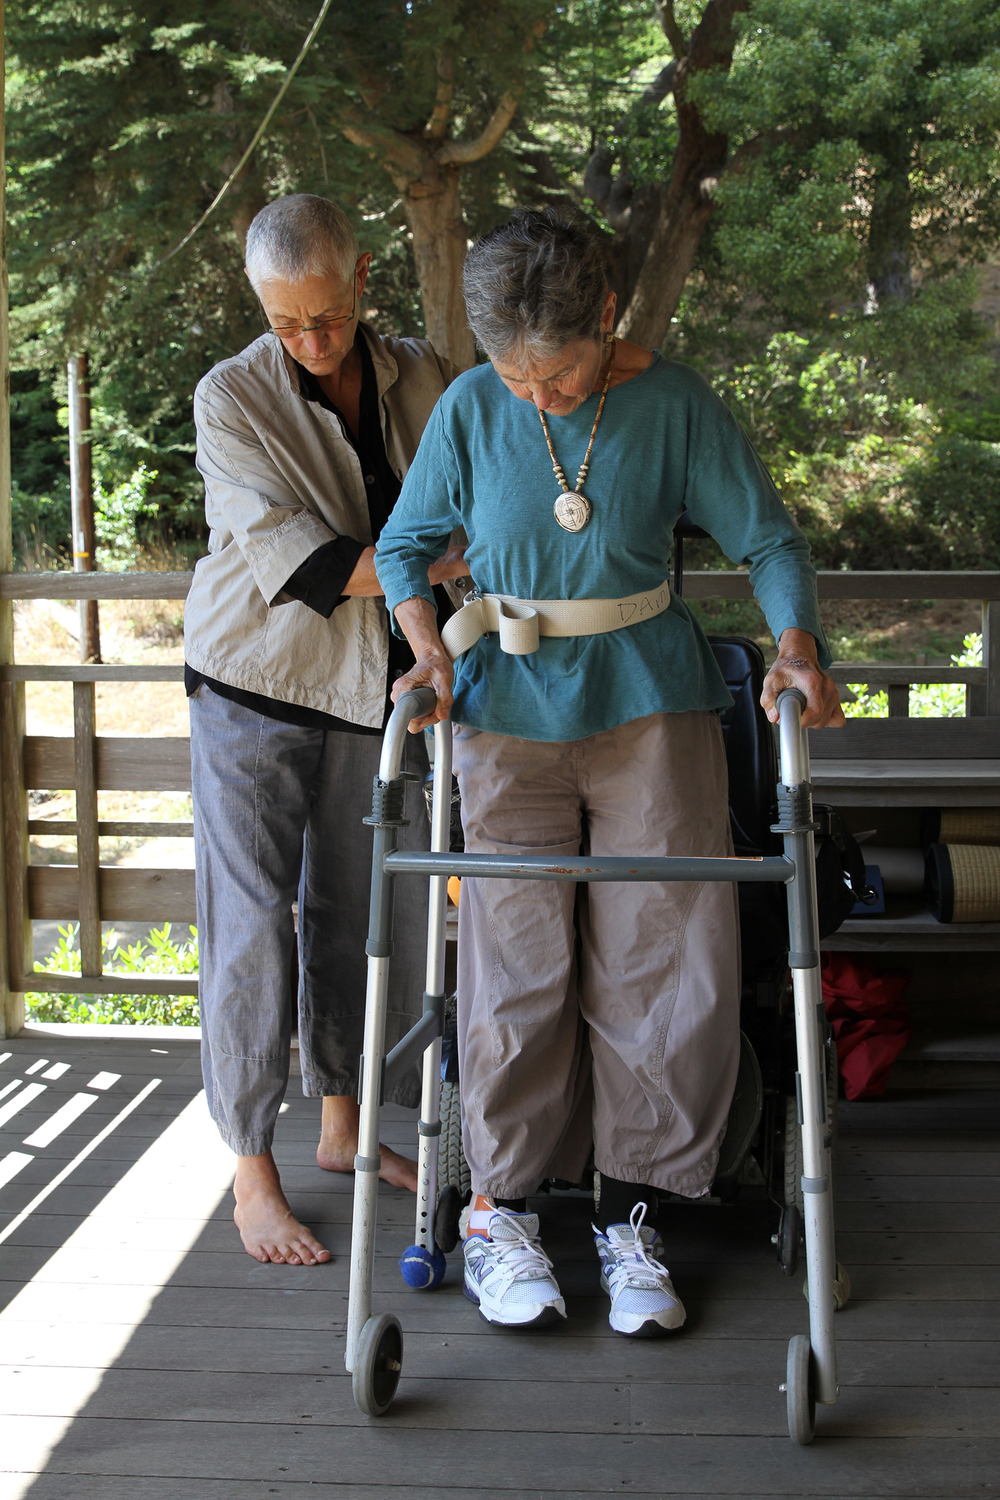 "Nancy ""Fu"" Schroeder assists her partner, Dr. Grace Dammann, with her physical therapy routine at their home at Green Gulch Farm Zen Center in Marin, California. Dammann survived a near-fatal head-on collision on the Golden Gate Bridge in 2008. The new feature-length documentary  States of Grace  by filmmakers Helen S. Cohen and Mark Lipman follows Dammann and her family in the wake of the accident. Photo credit: Mark Lipman"